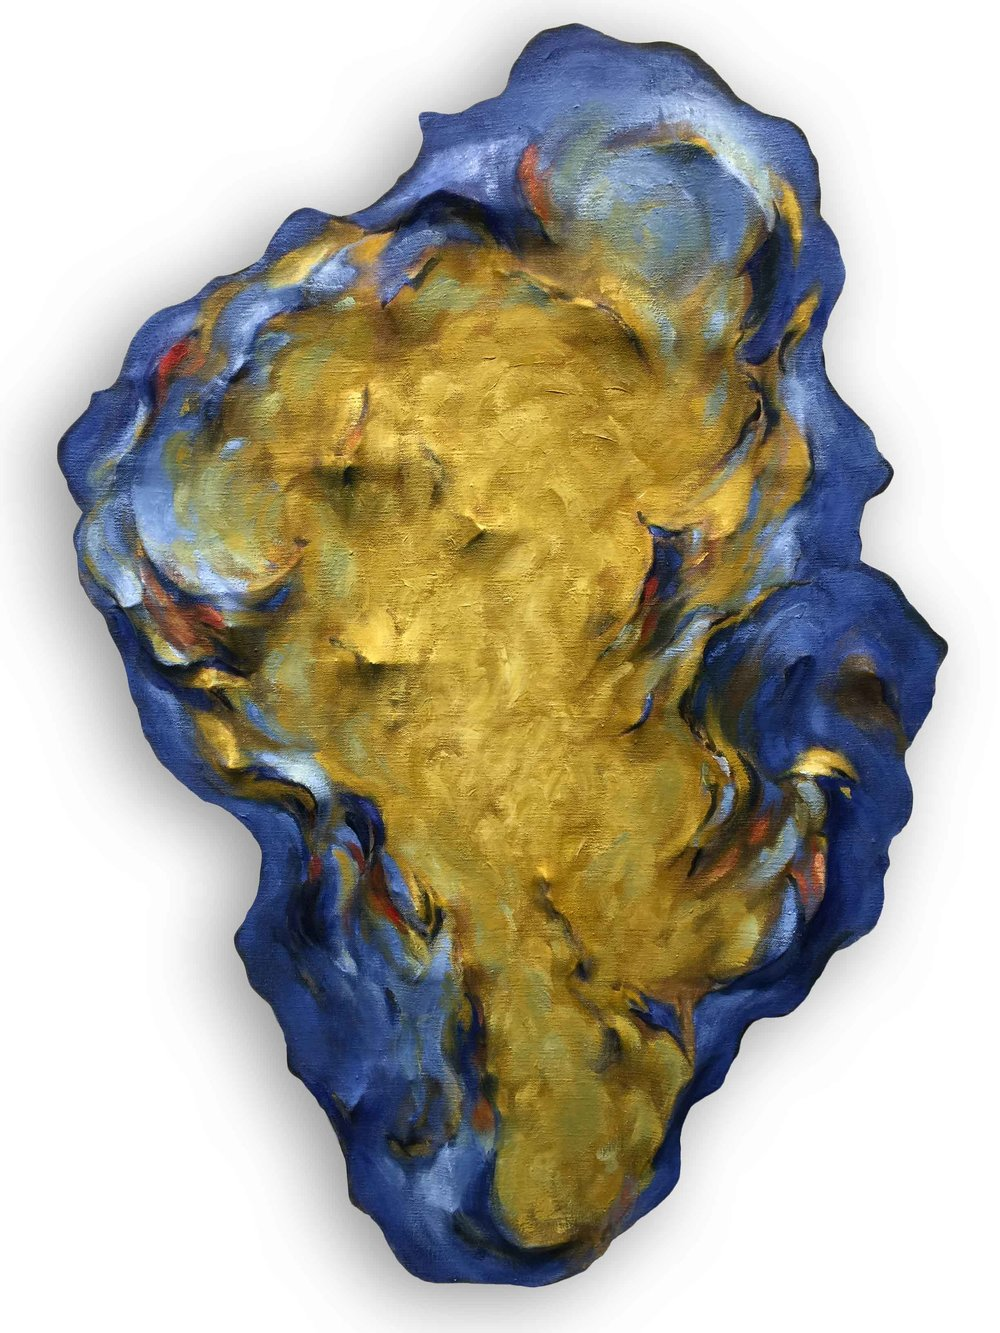 Untitled (Ochre and Cobalt Blue)